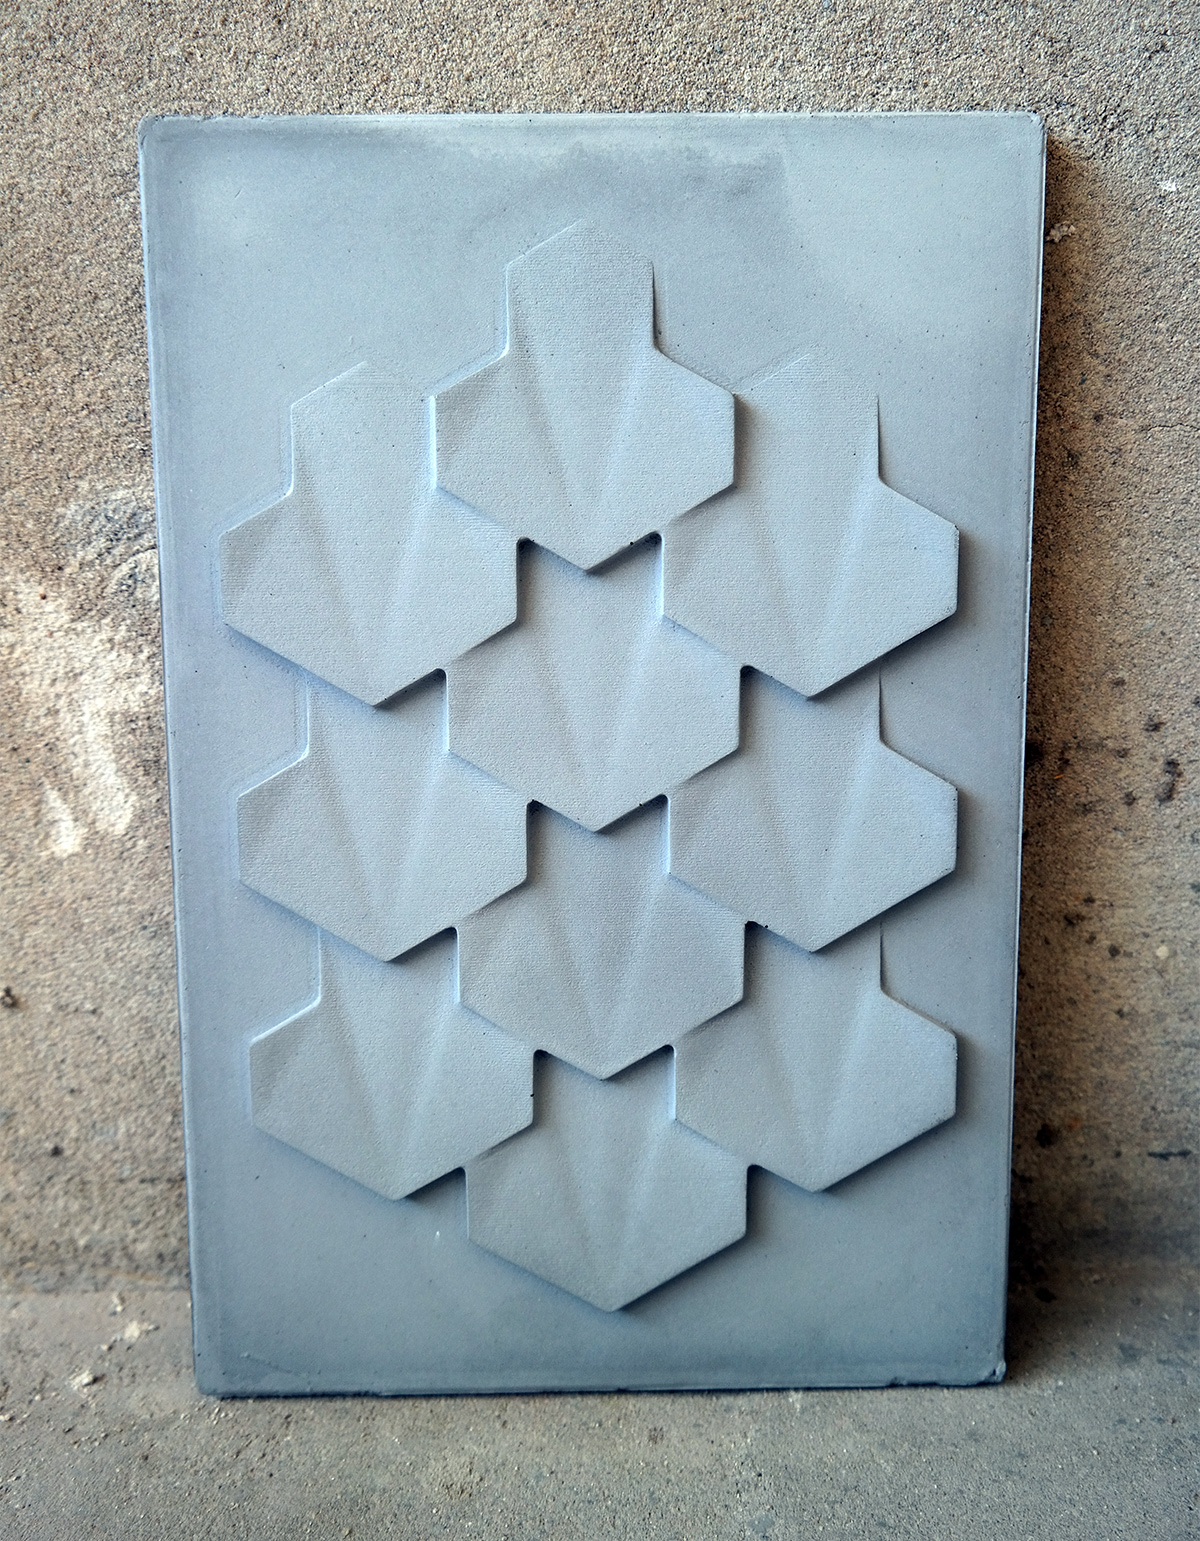 Panel-concrete-schub